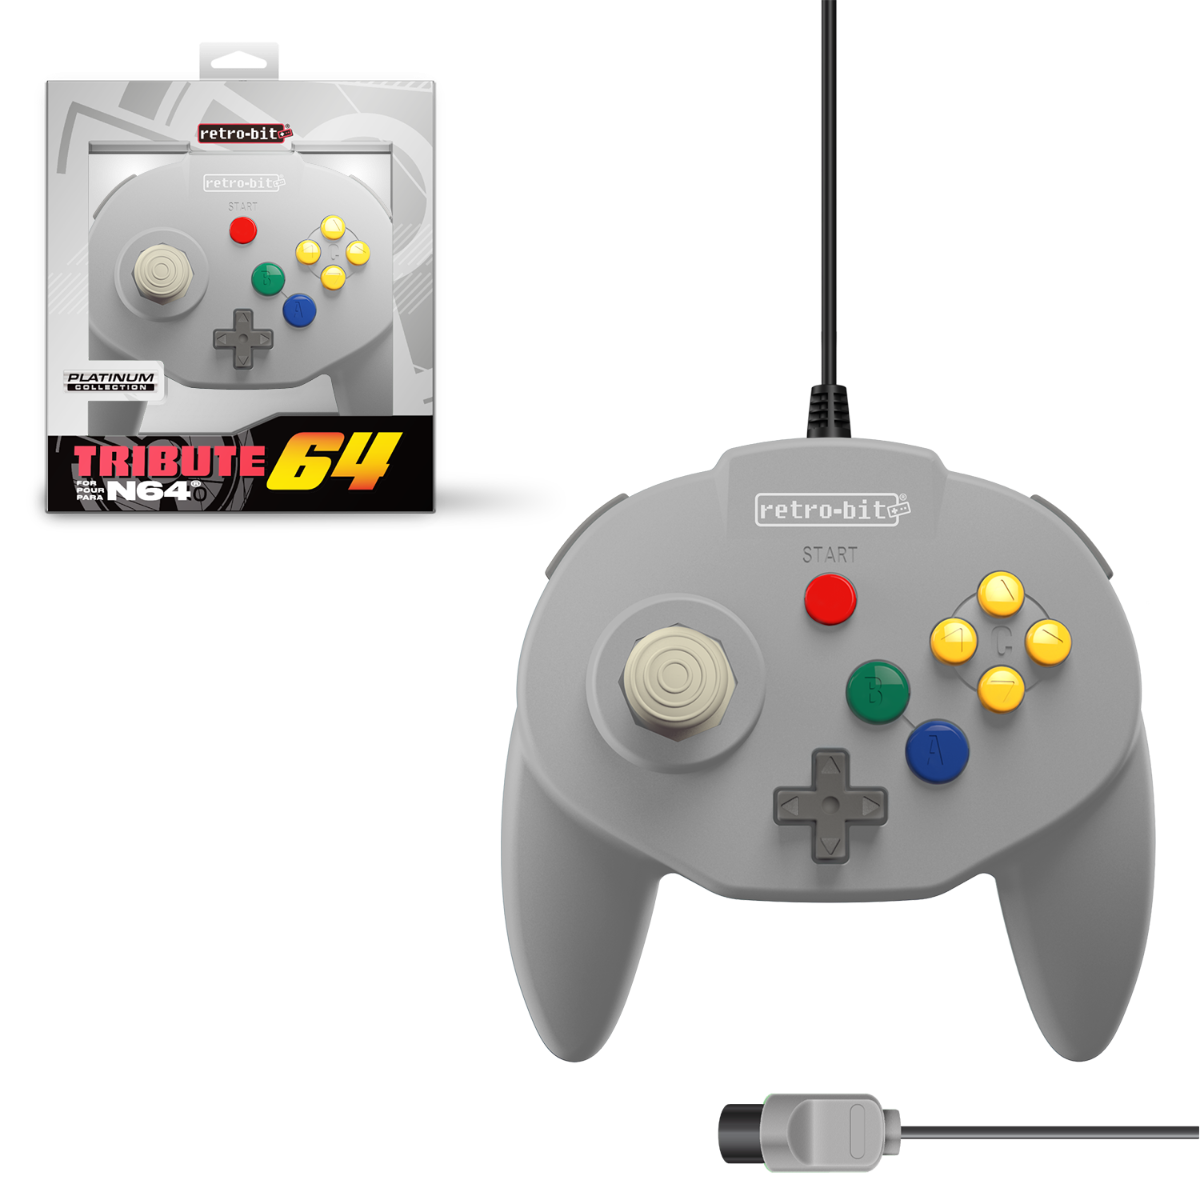 Tribute64 for N64 - Classic Grey